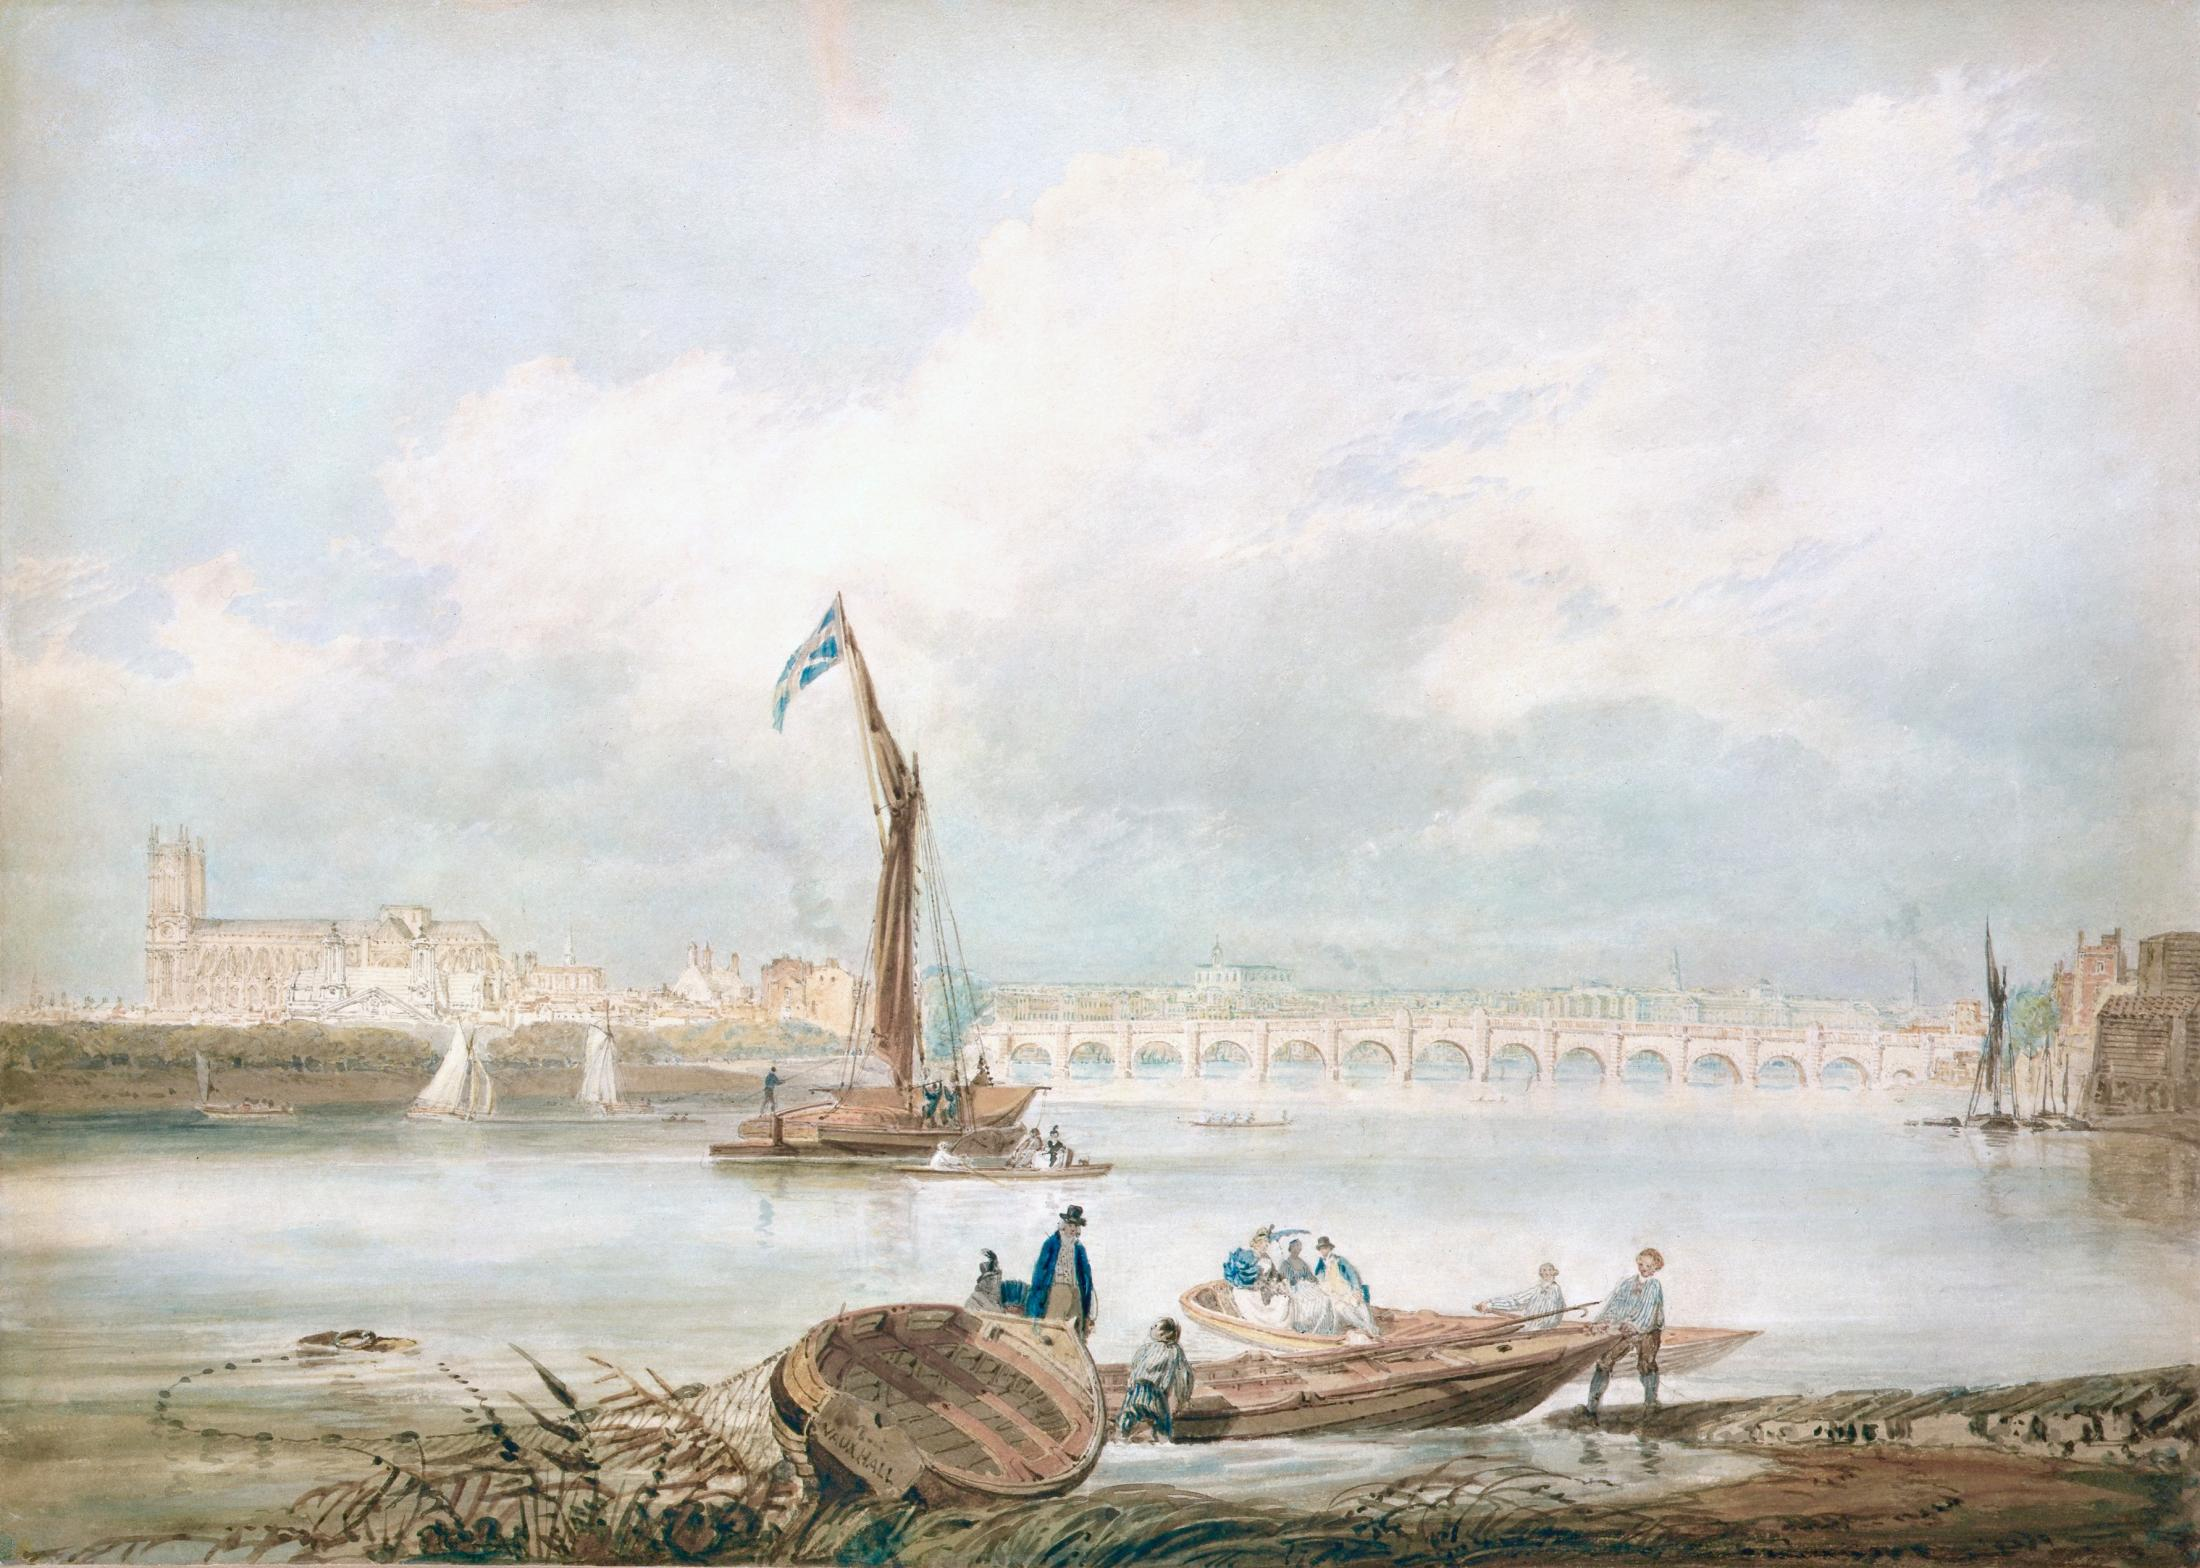 A View of London and the River Thames from Vauxhall with Westminster Bridge